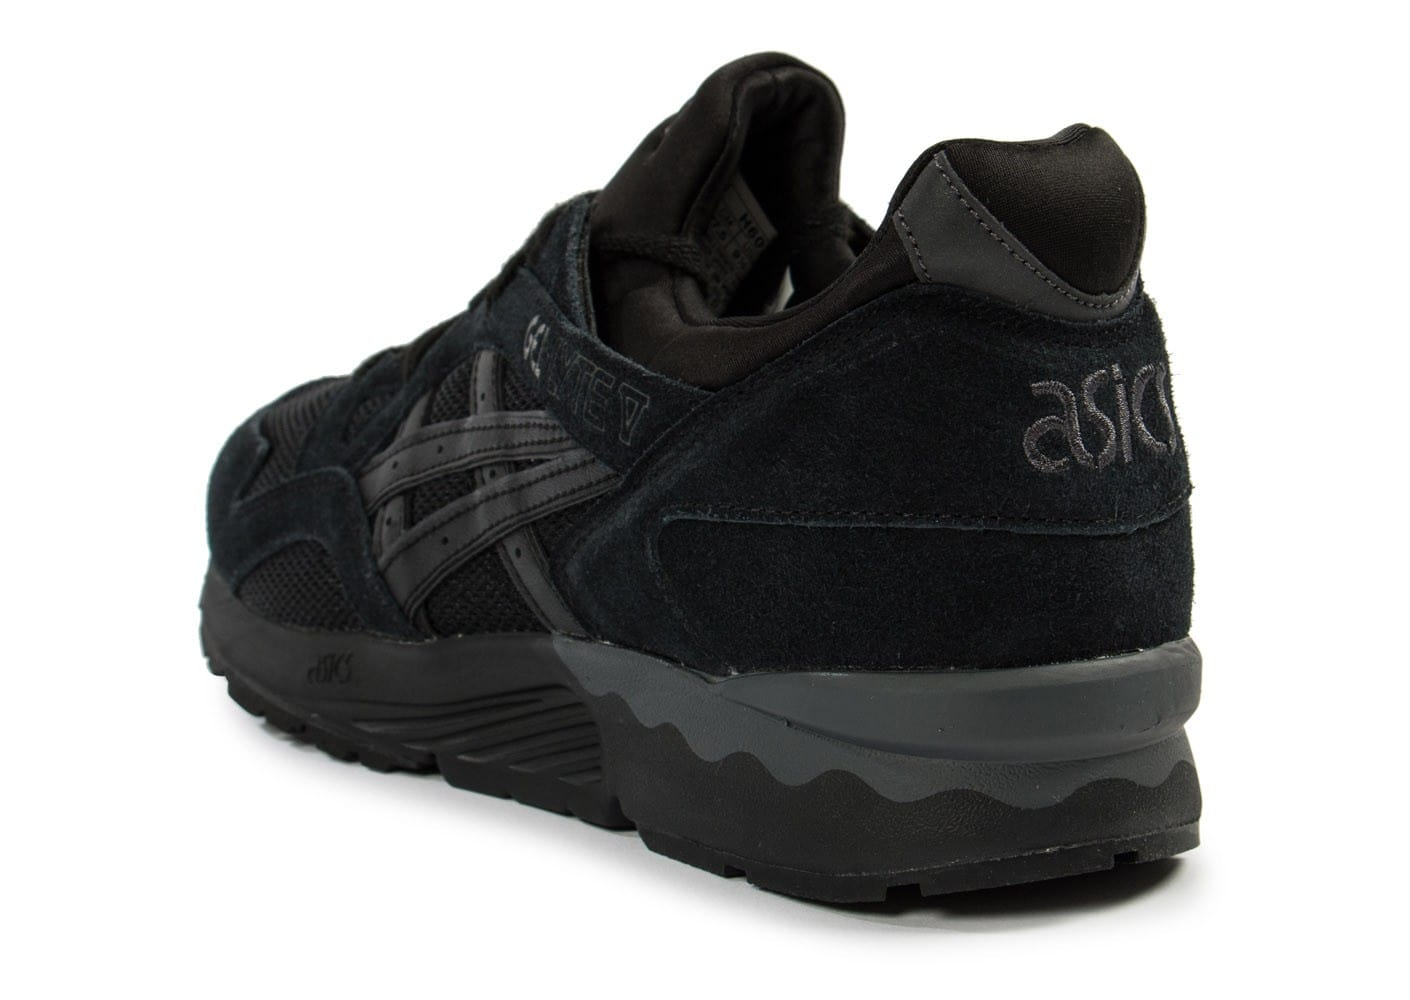 asics gel lyte v lights out noire chaussures homme chausport. Black Bedroom Furniture Sets. Home Design Ideas